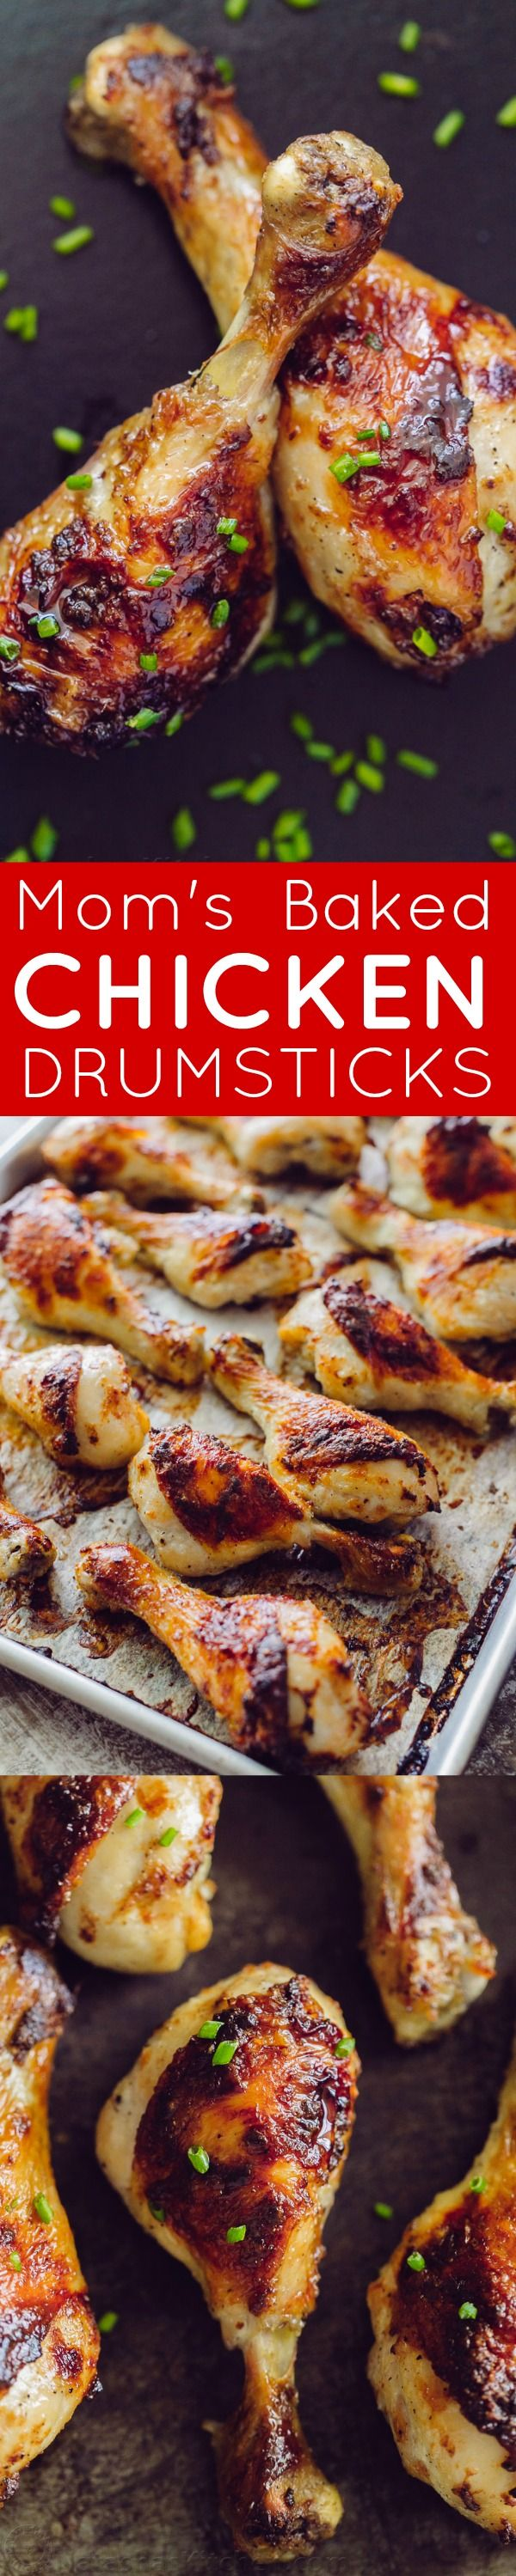 Tender, juicy baked chicken drumsticks with a crisp, salty skin. Marinade has only 4 ingredients. Mom's method makes these chicken drumsticks finger-lickin' good! | natashaskitchen.com